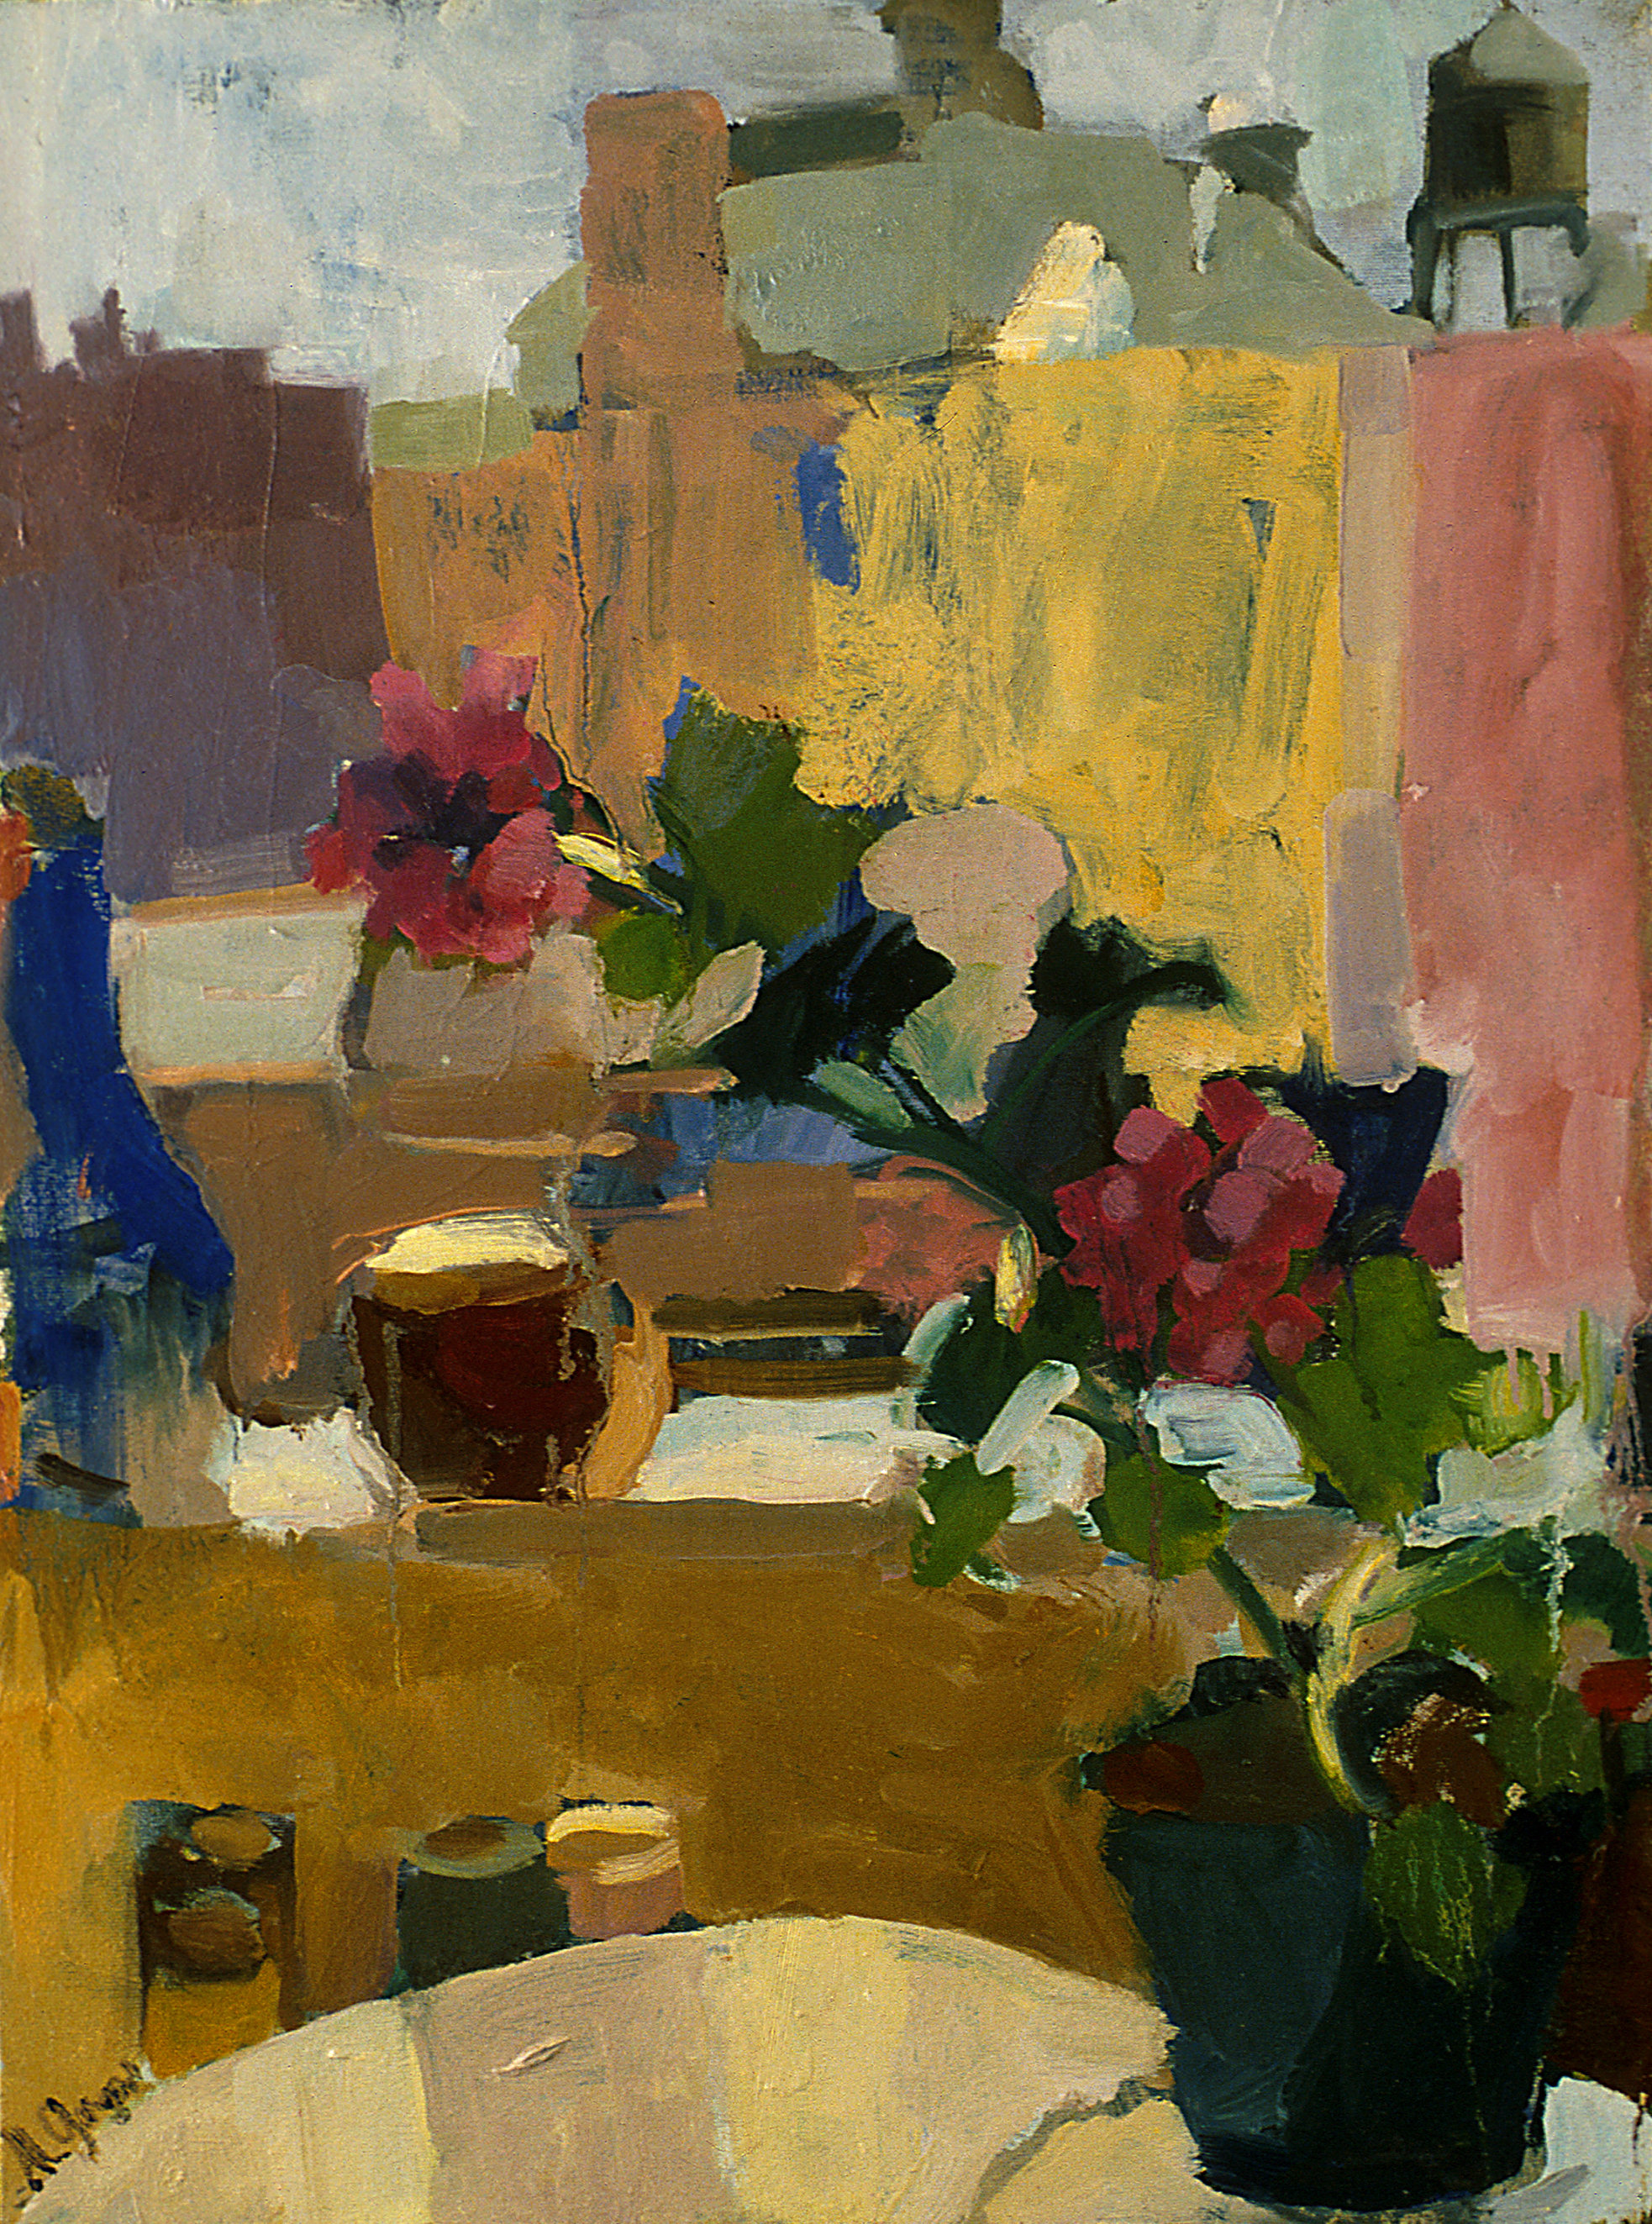 New York Apartment  20 x 36 inches Oil on Canvas 1994